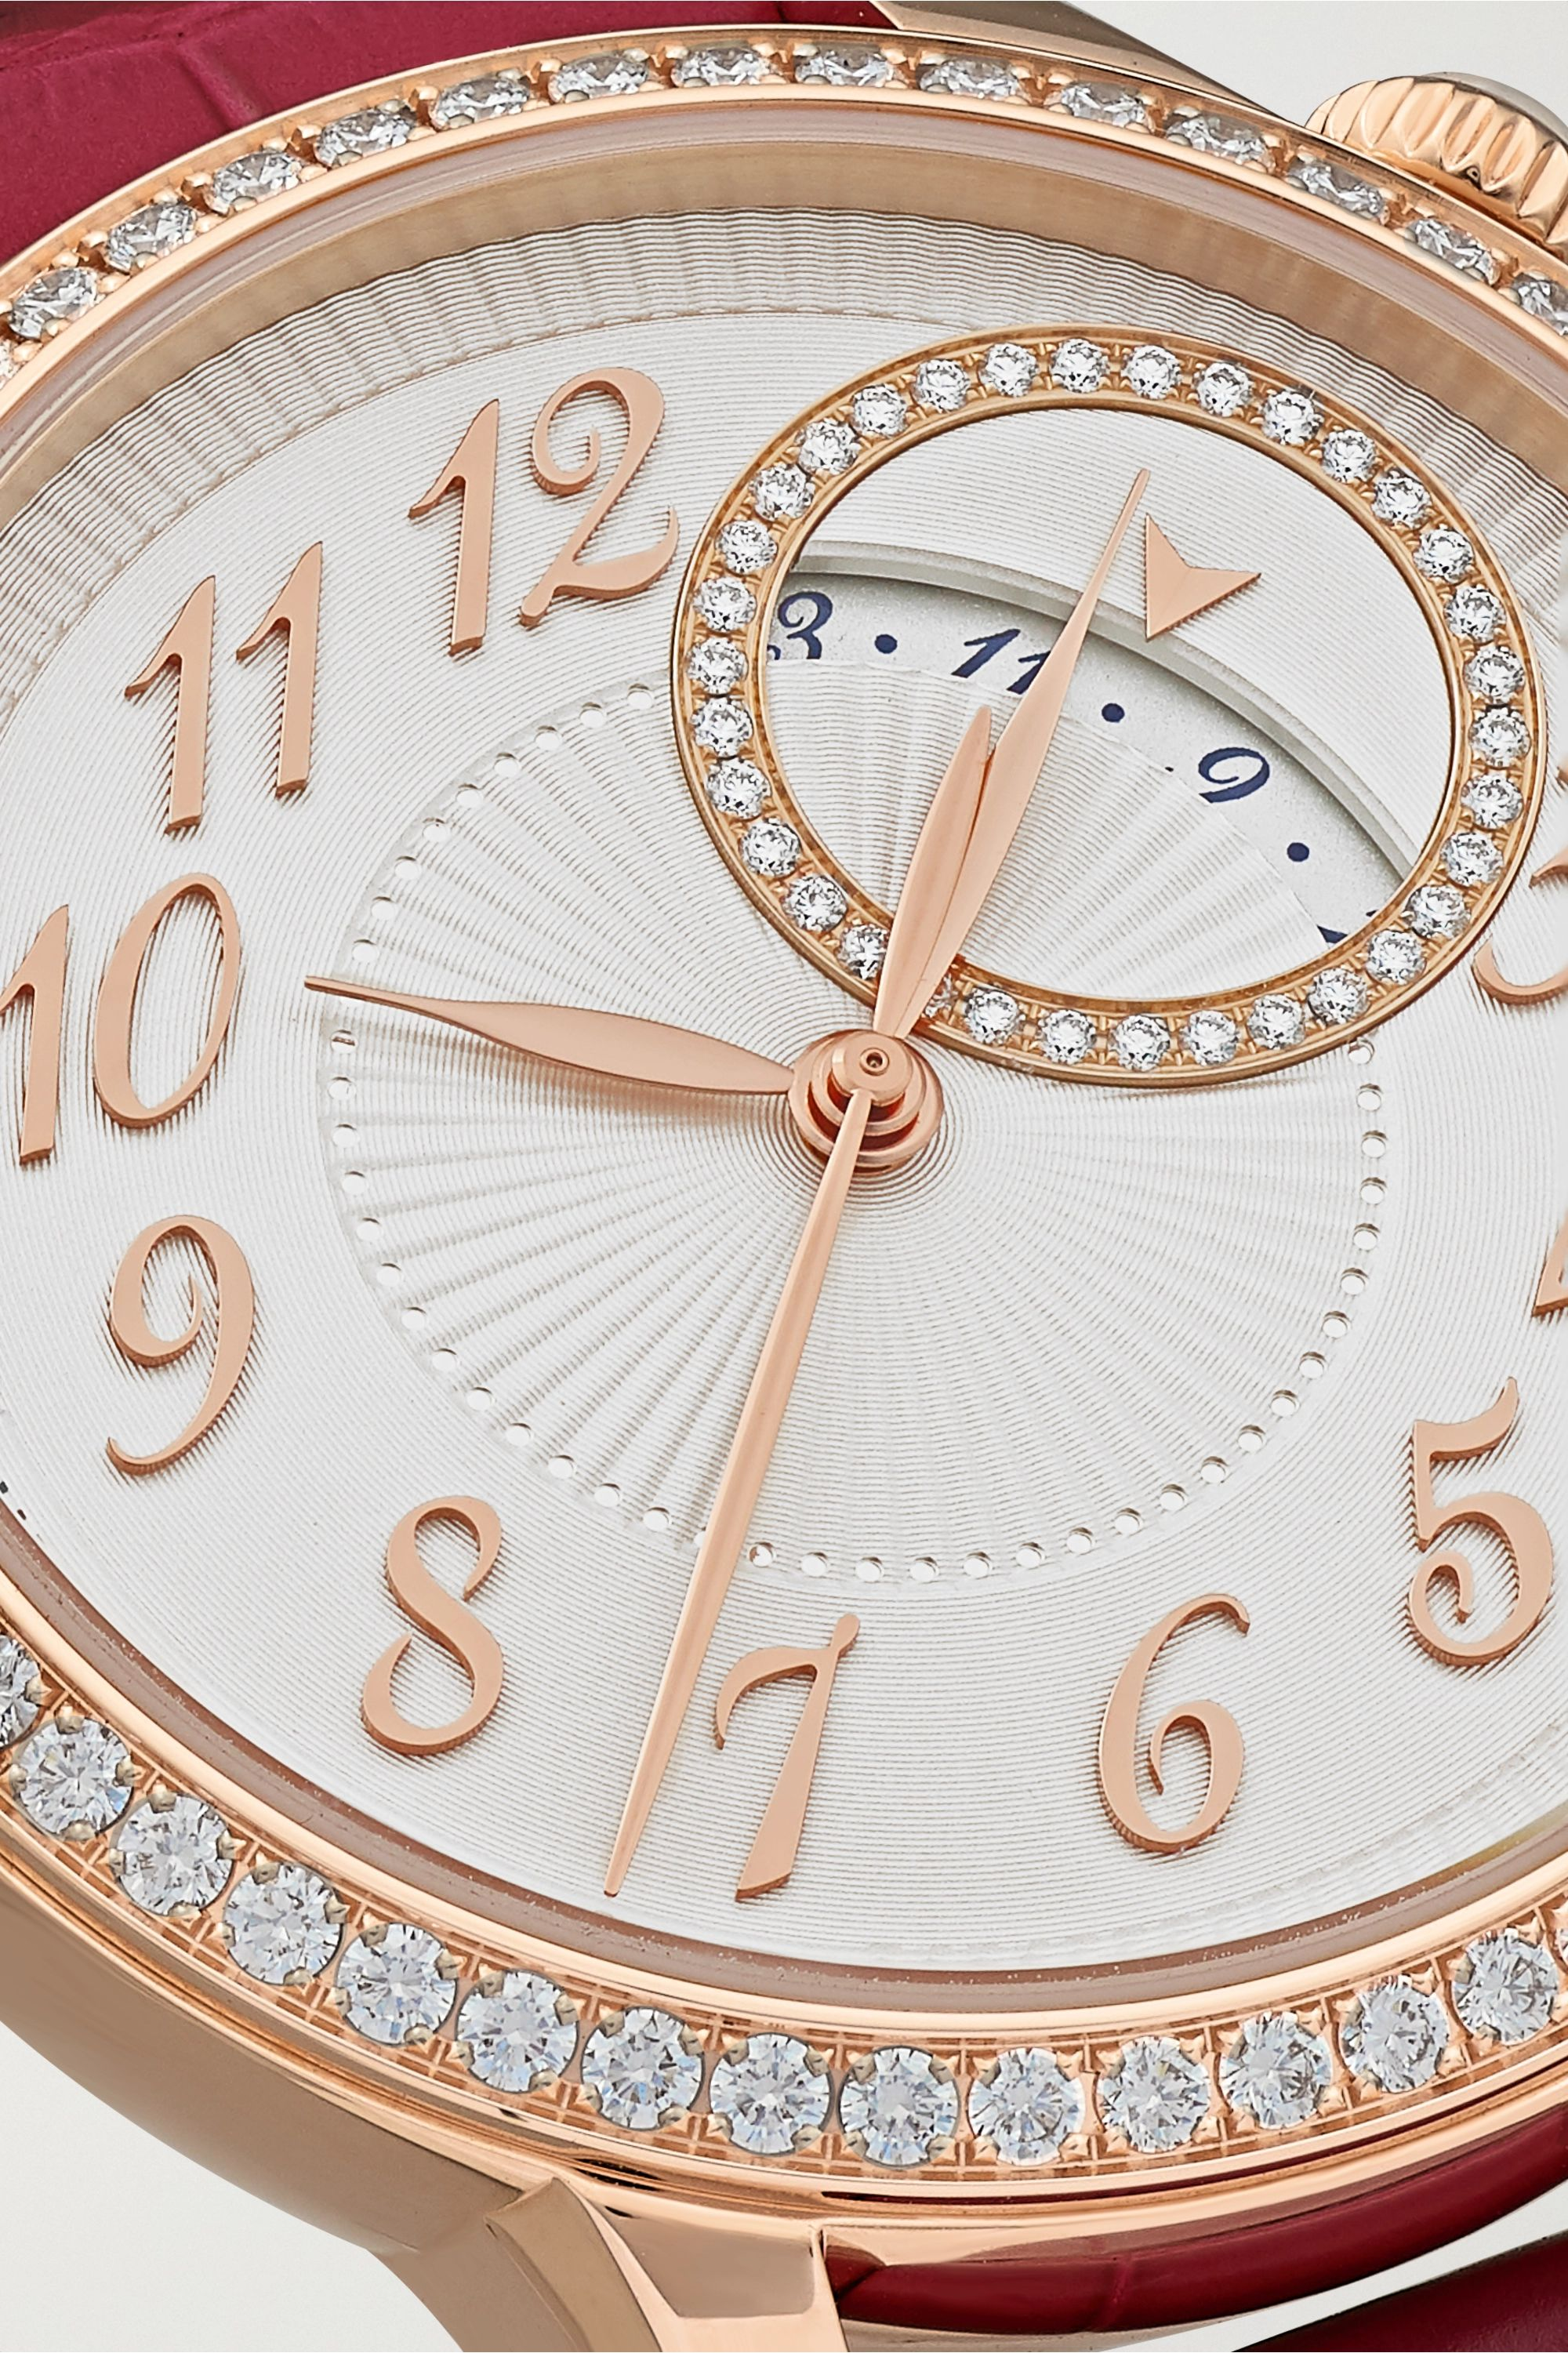 Vacheron Constantin Egérie Automatic 35mm 18-karat pink gold and diamond watch